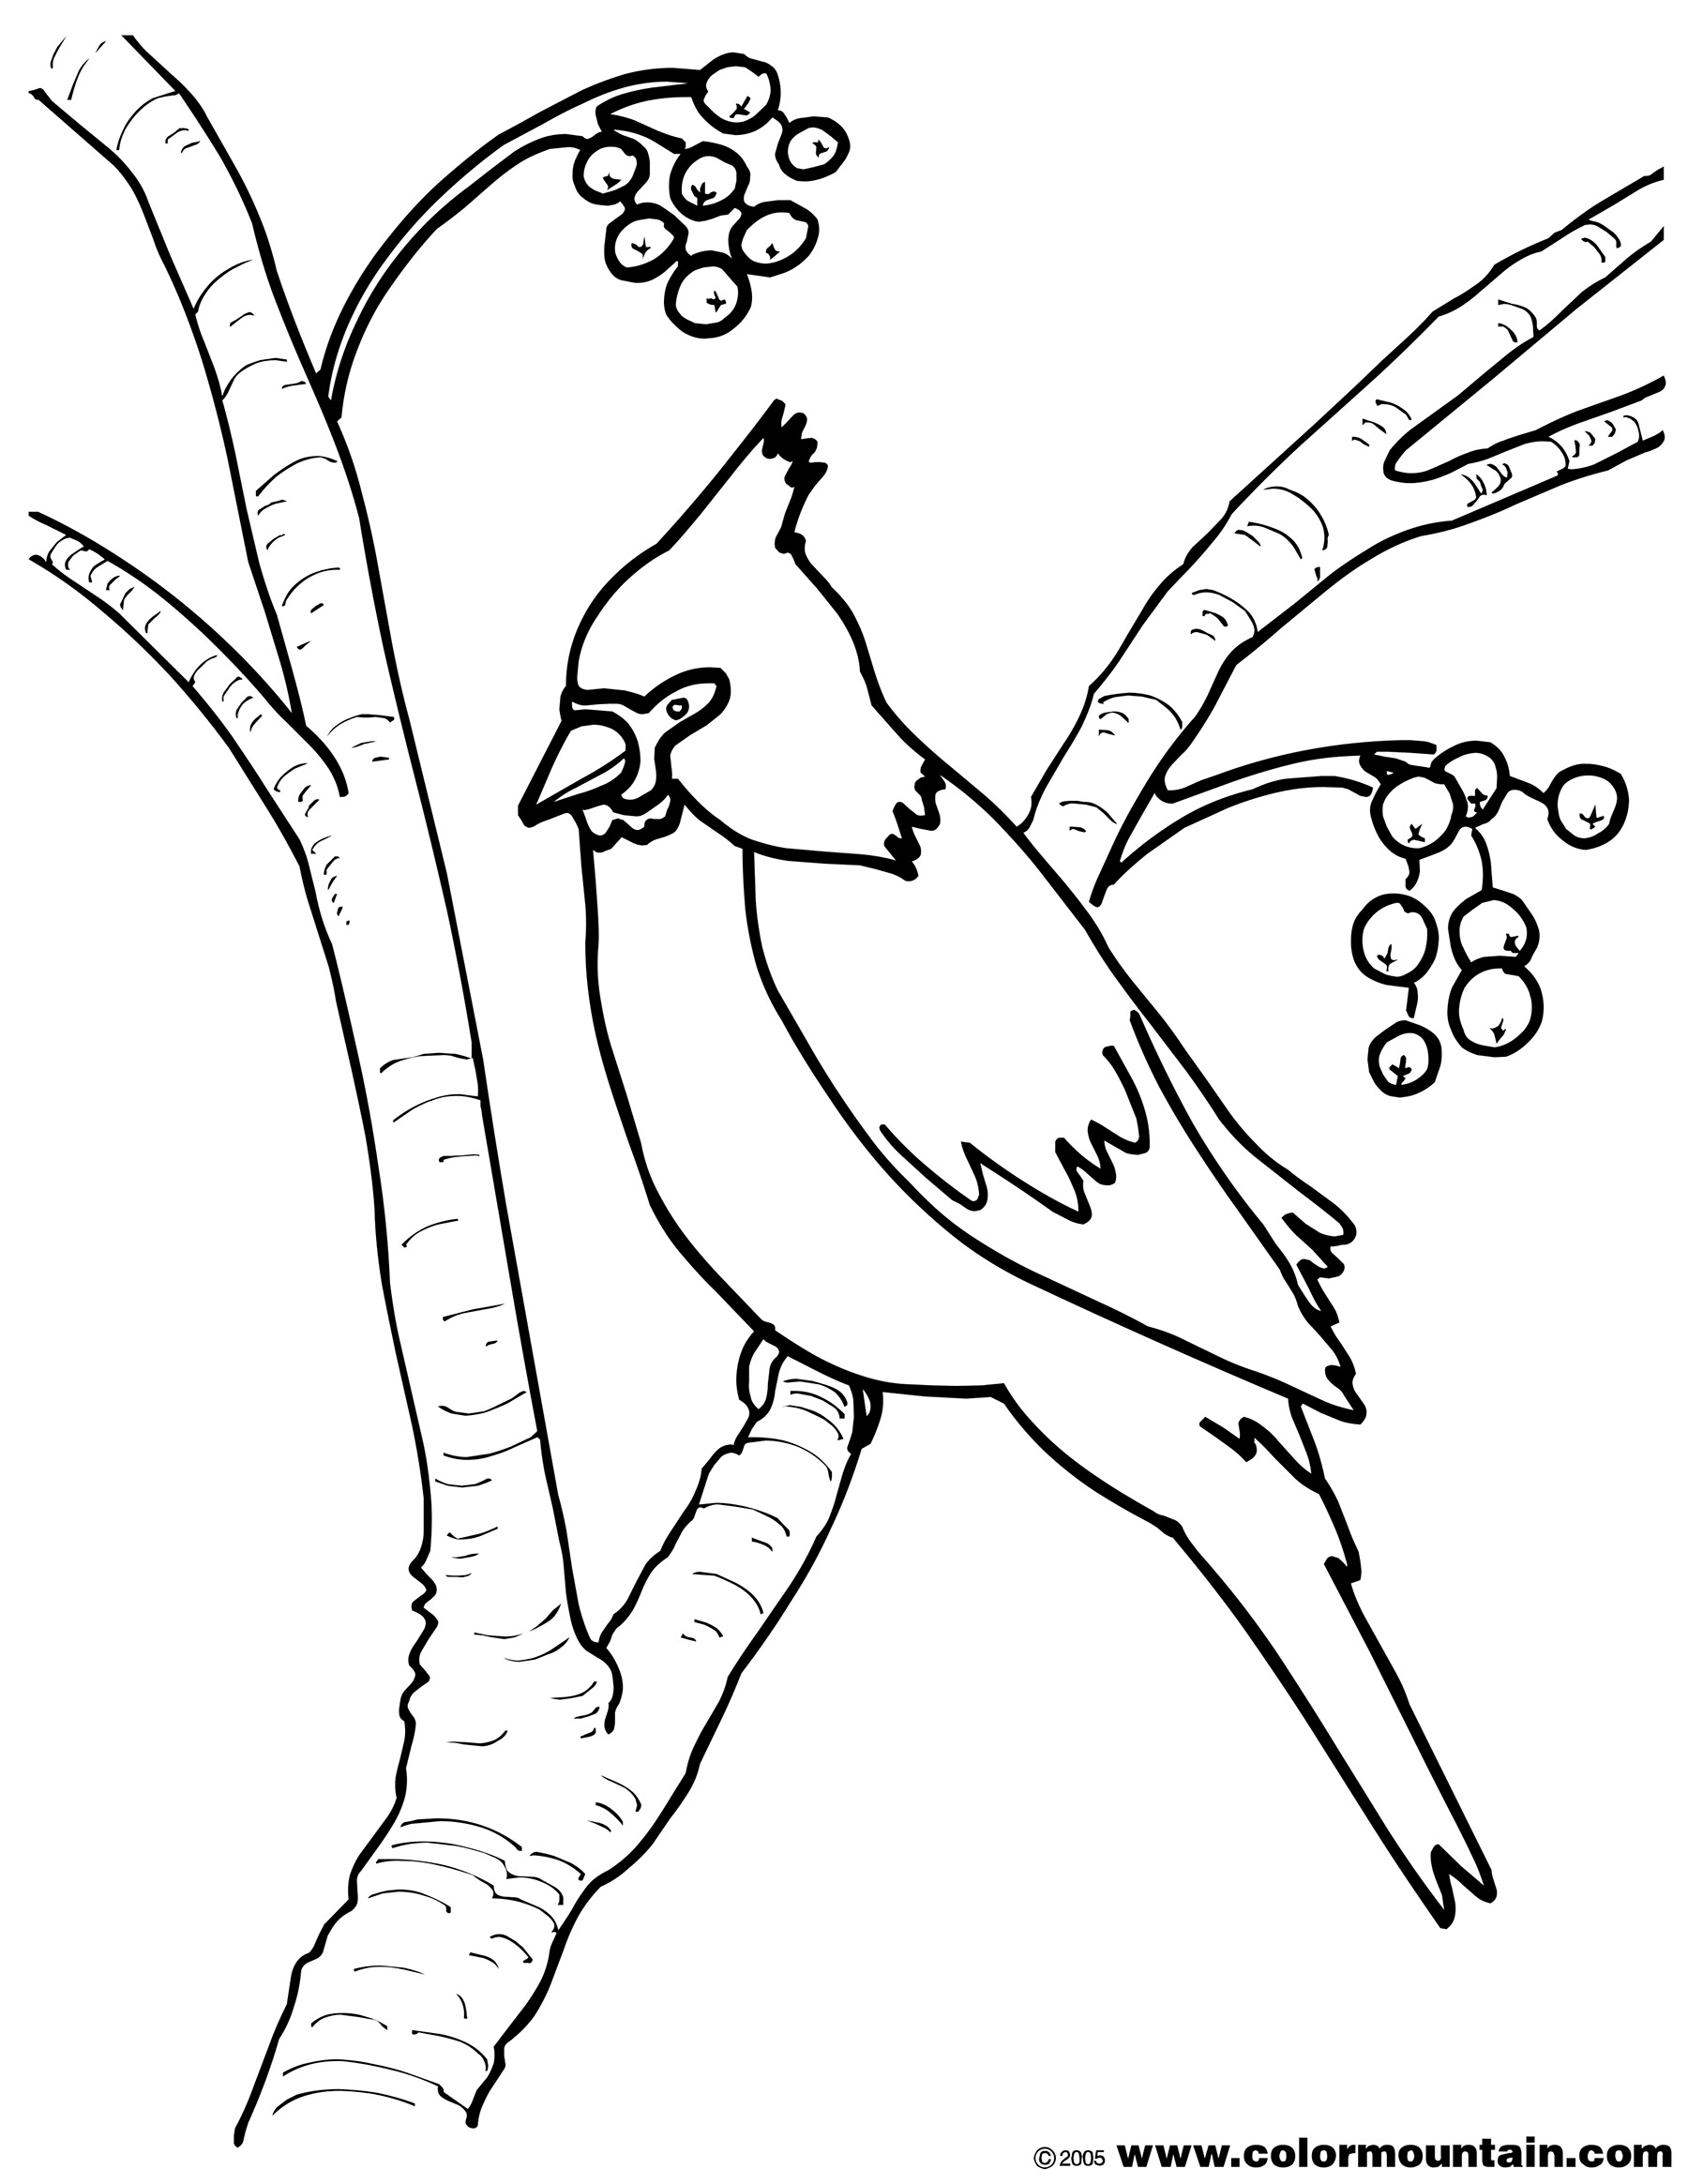 cardinal coloring pages - photo#26